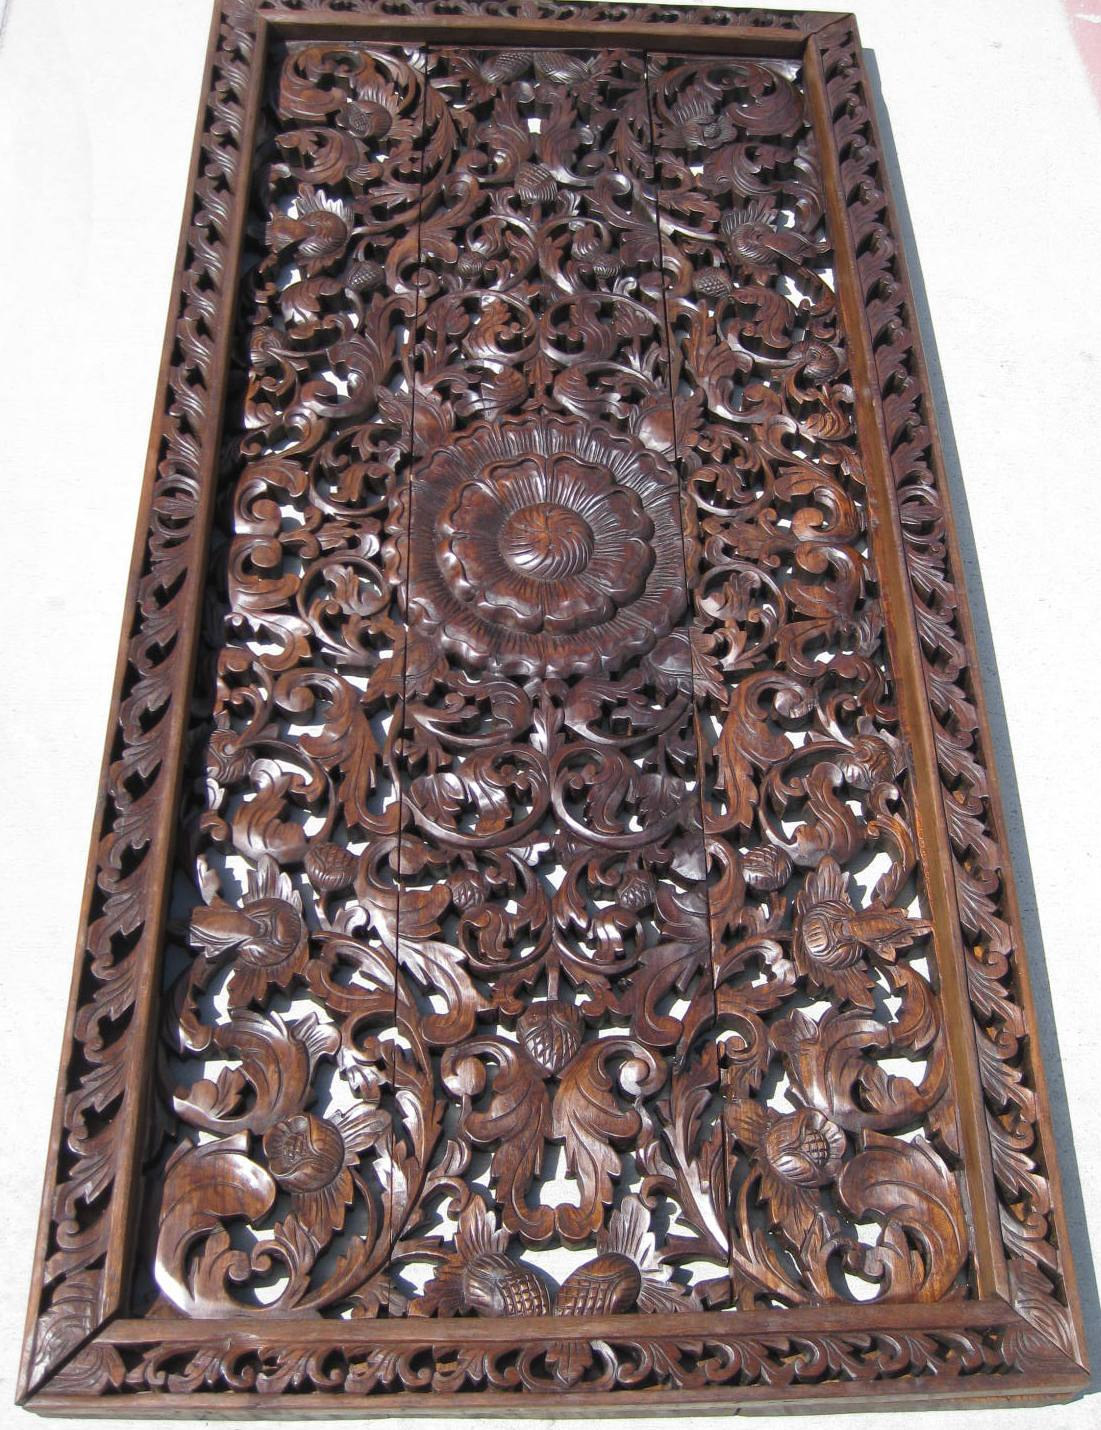 3'x6' Floral Teak Wood Panel ... - Teak Panel/Teak Wood Panels/Teak Wood Carvings/Herds Of Elephants